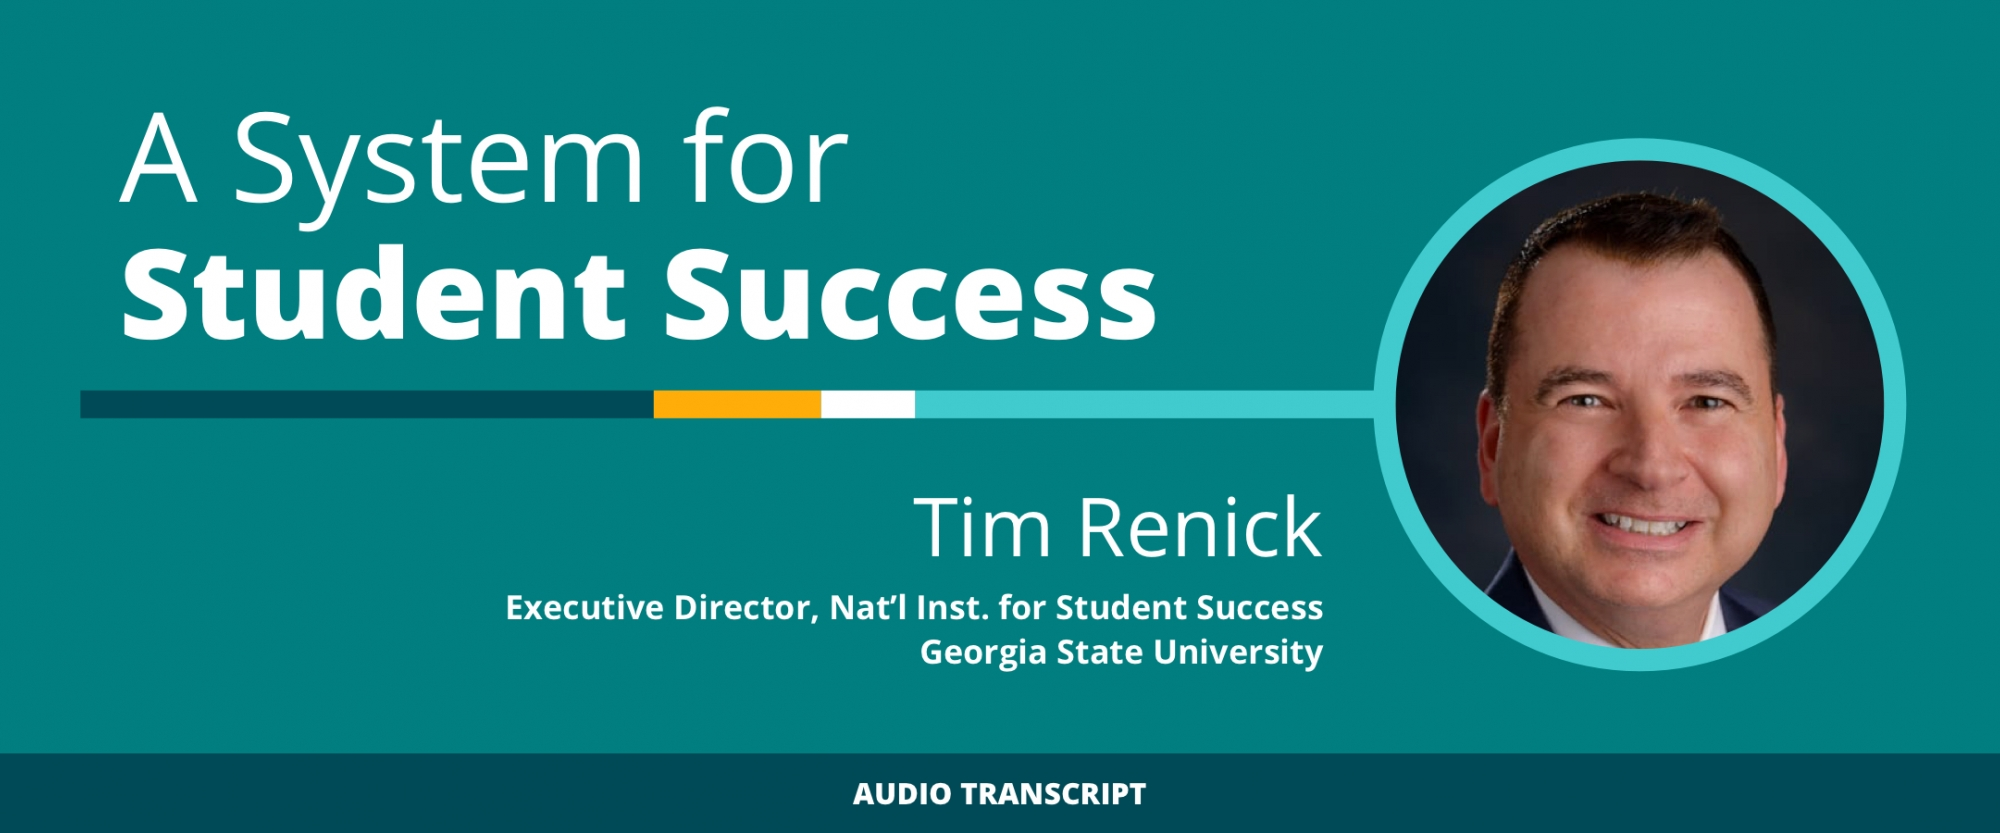 Weekly Wisdom 6/10/21: Transcript of Conversation With Tim Renick, Executive Director, National Institute for Student Success at Georgia State University